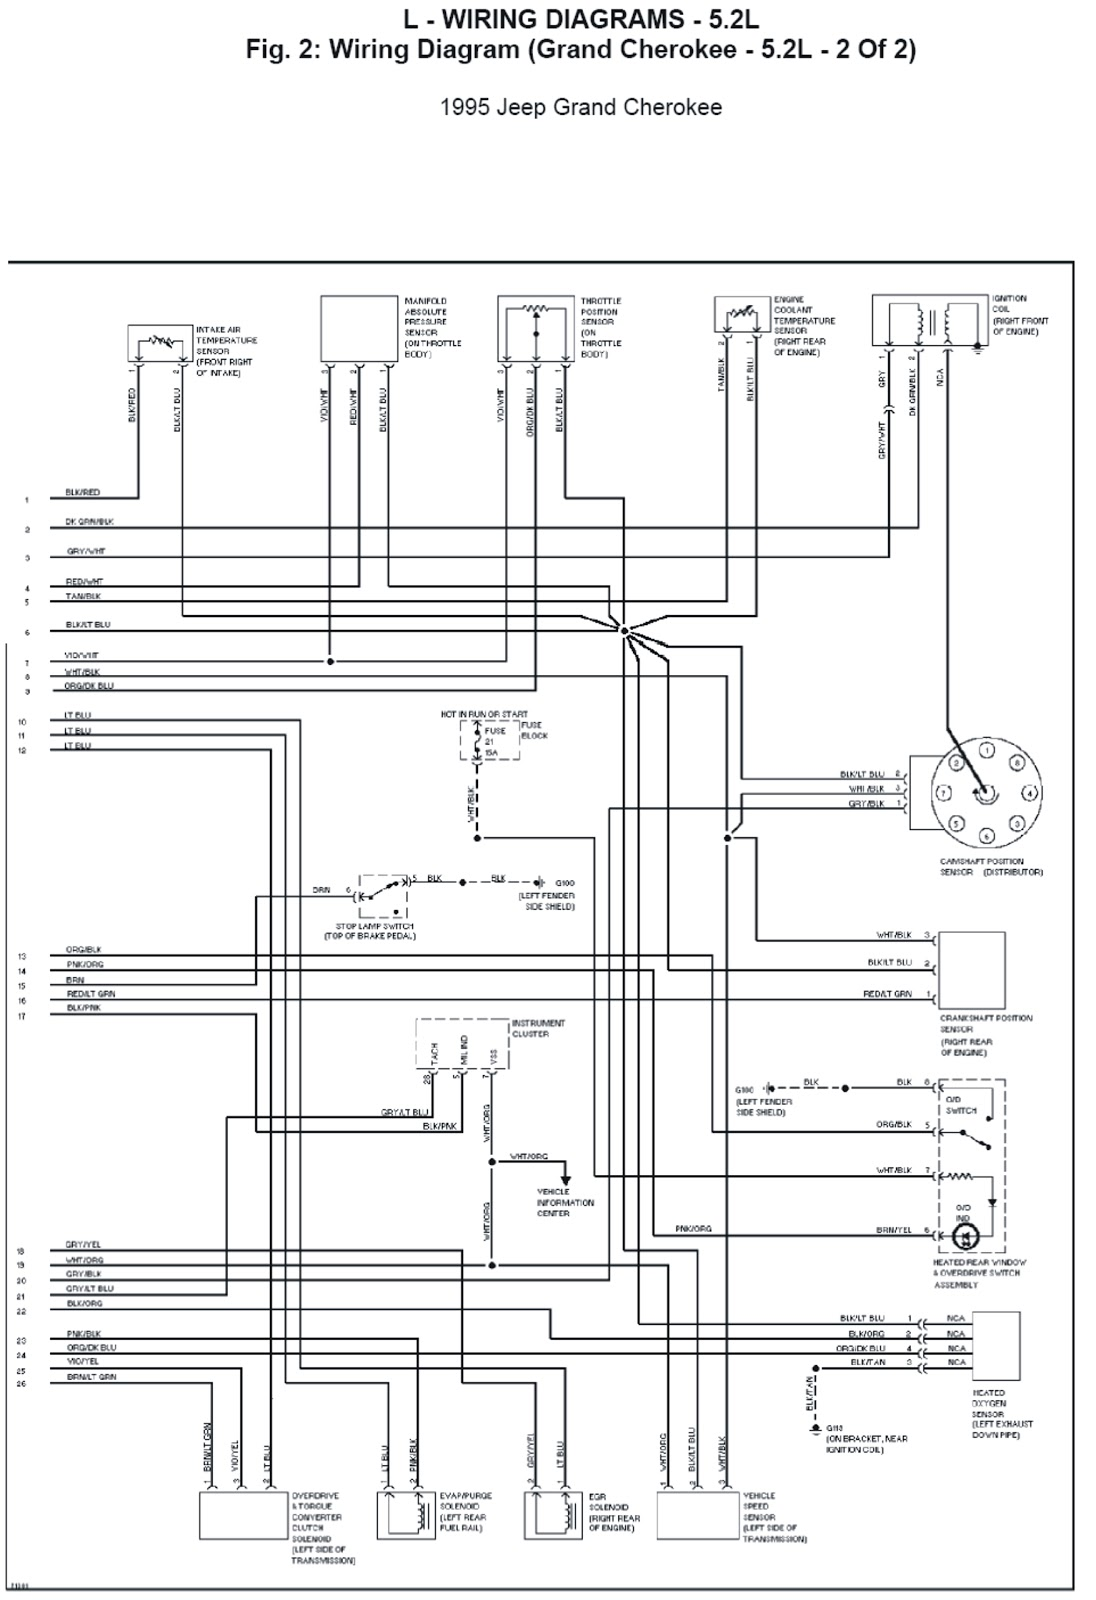 Corvette Power Antenna Wiring Diagram Free Download Wiring Diagram